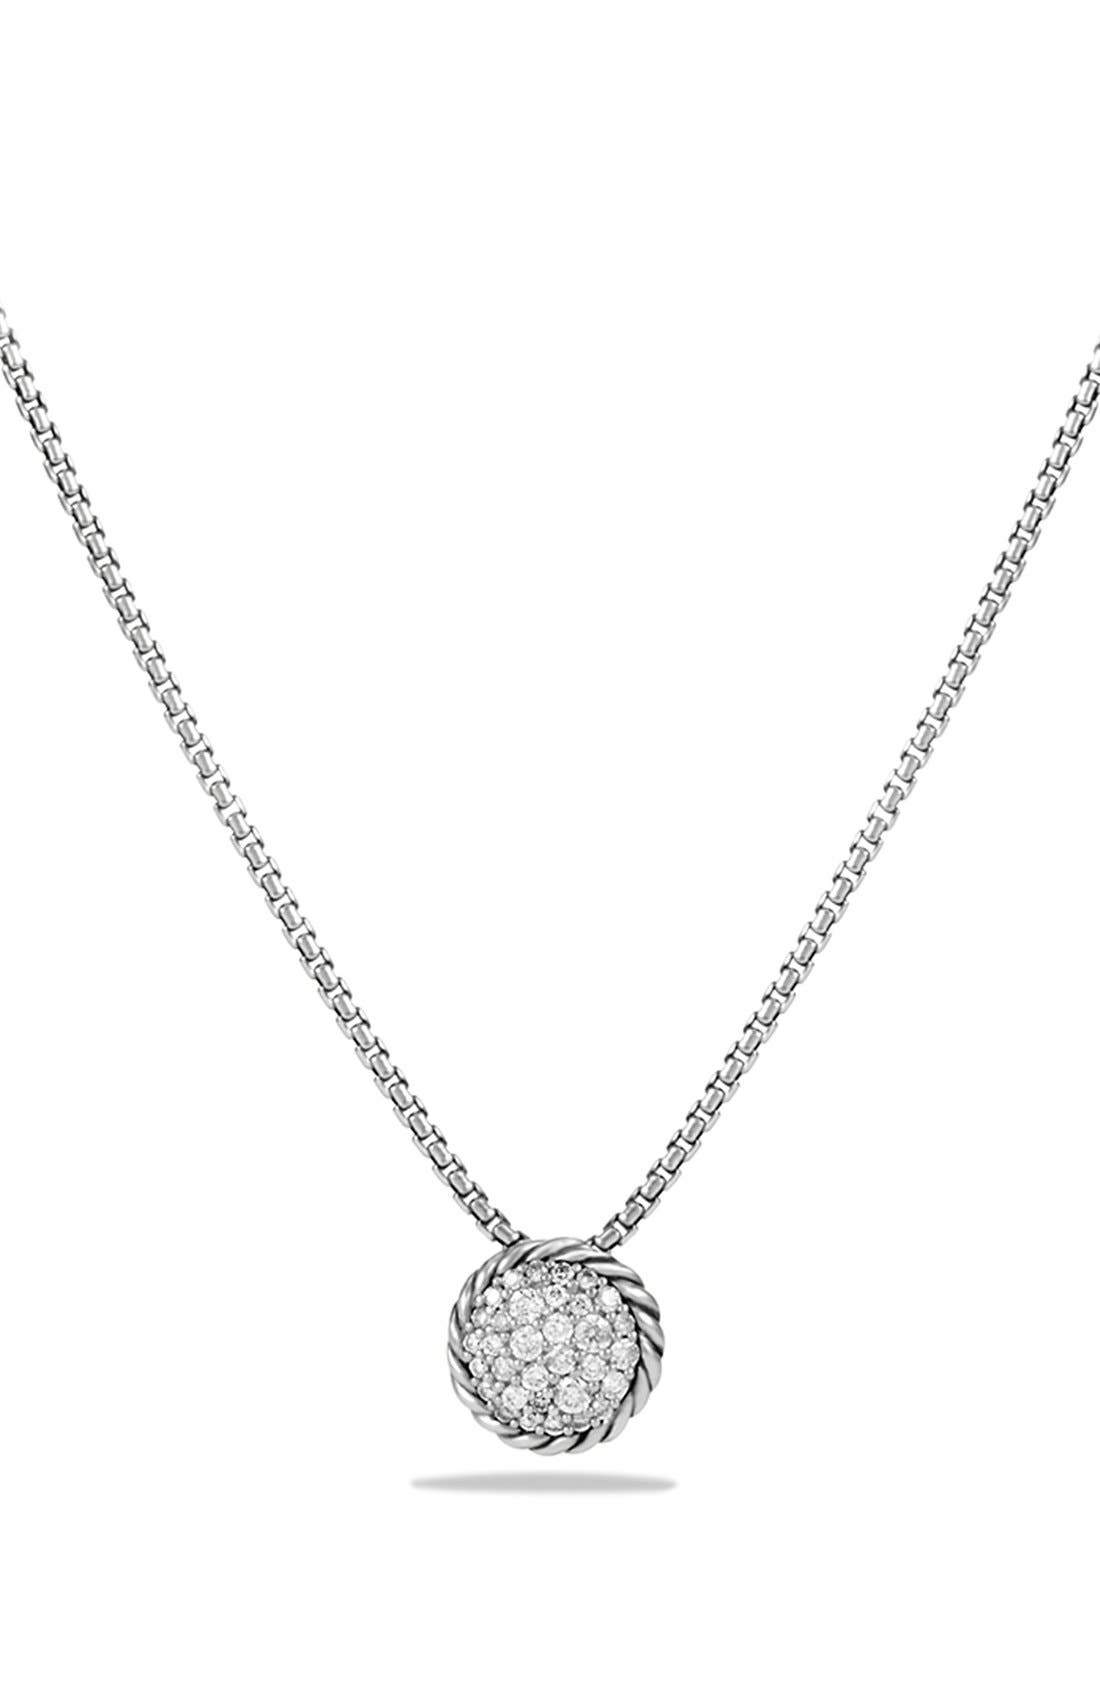 DAVID YURMAN Châtelaine Pavé Pendant Necklace with Black Diamonds